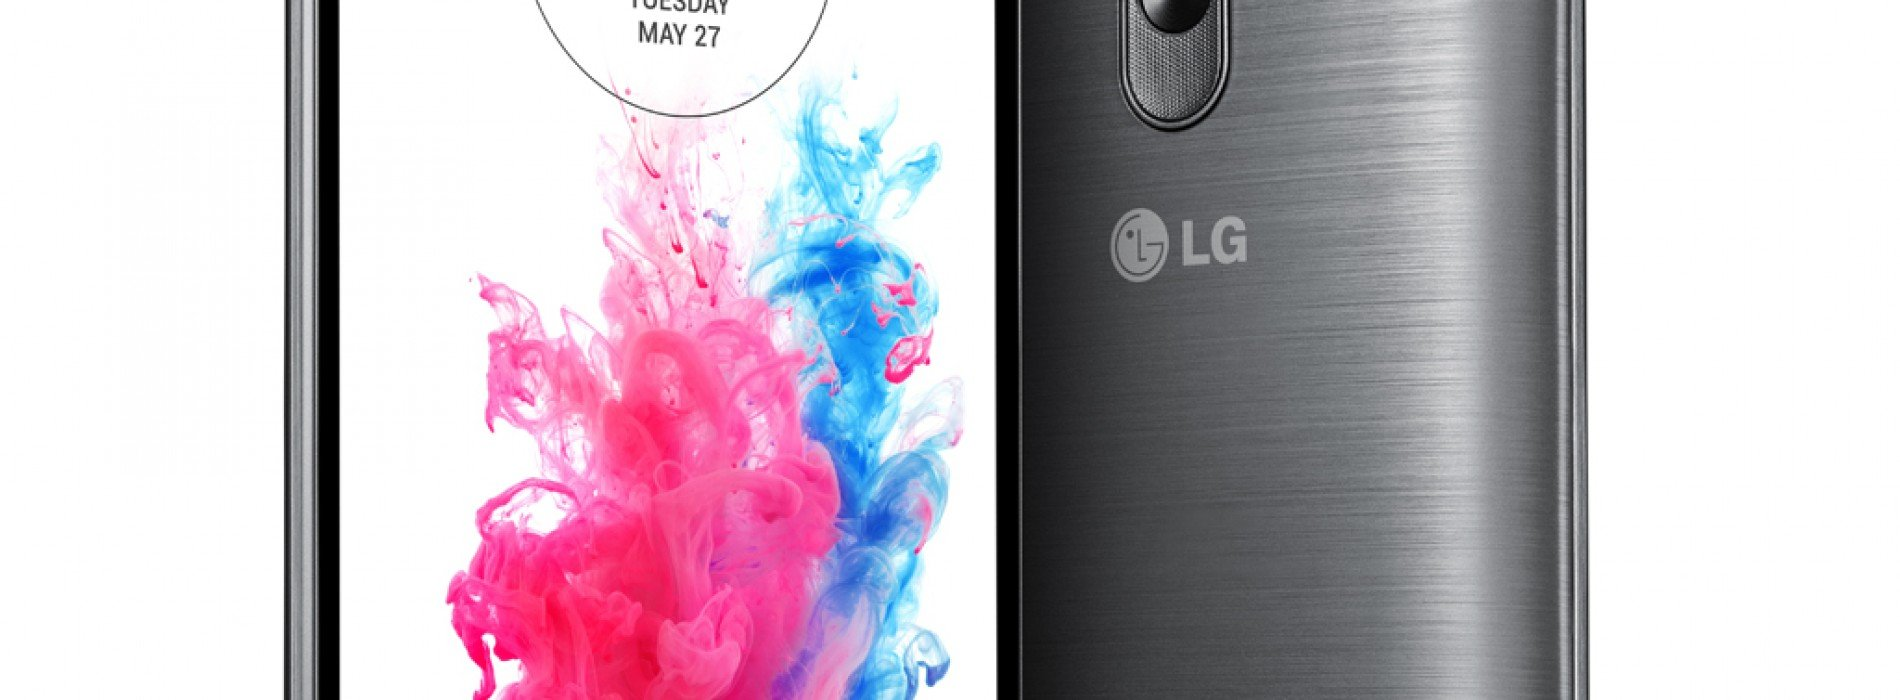 Verizon to carry LG G3 on July 17, report says